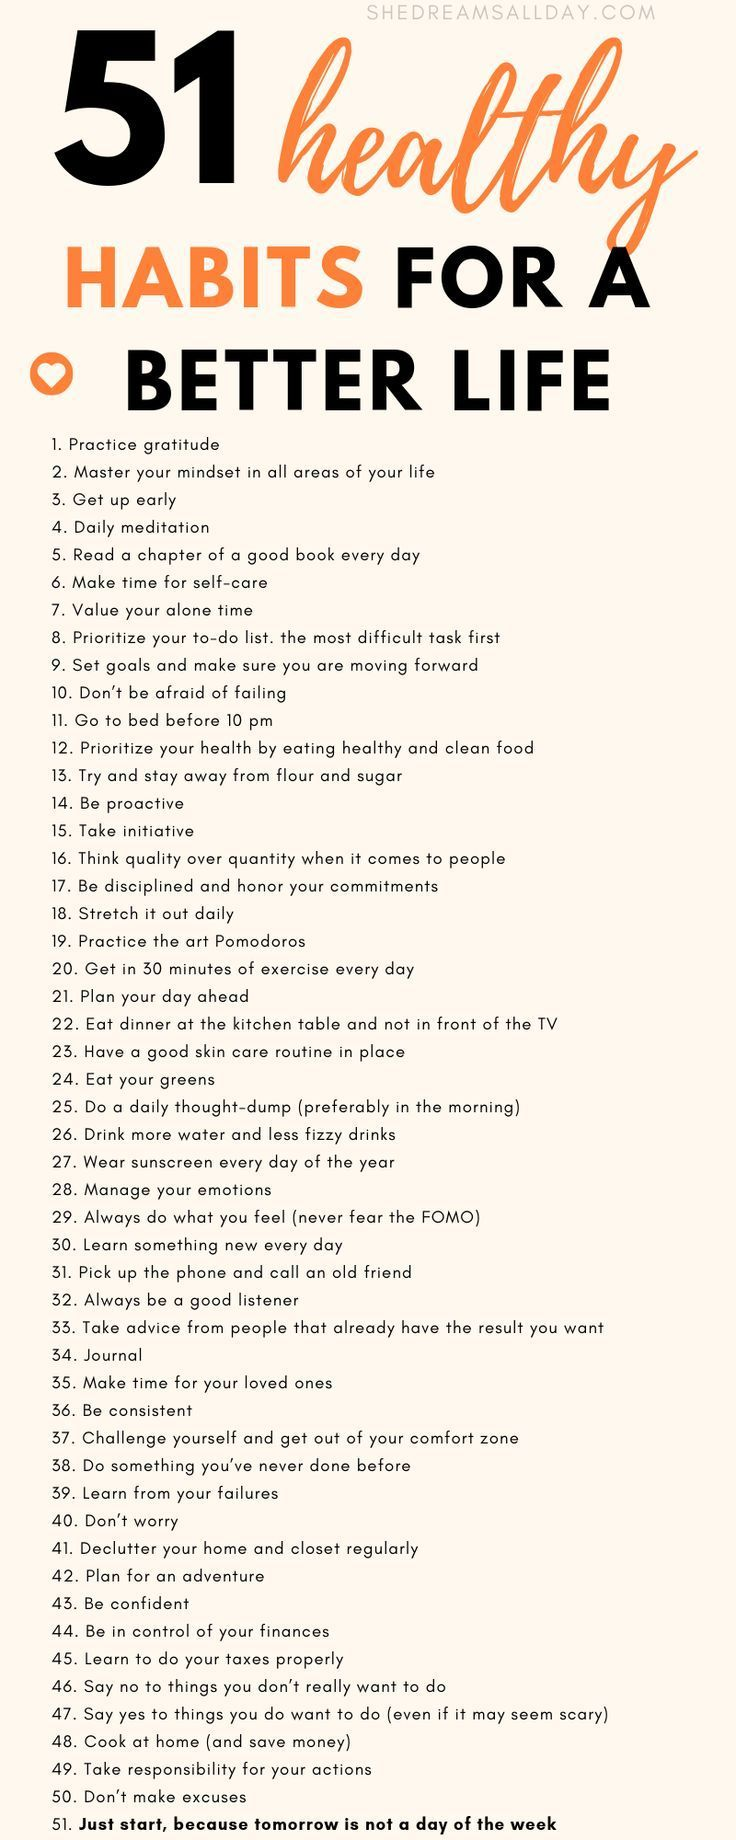 51 positive and healthy habits for a better and more amazing life You are what you repeatedly do so start today by implementing one or more of the habits on the list